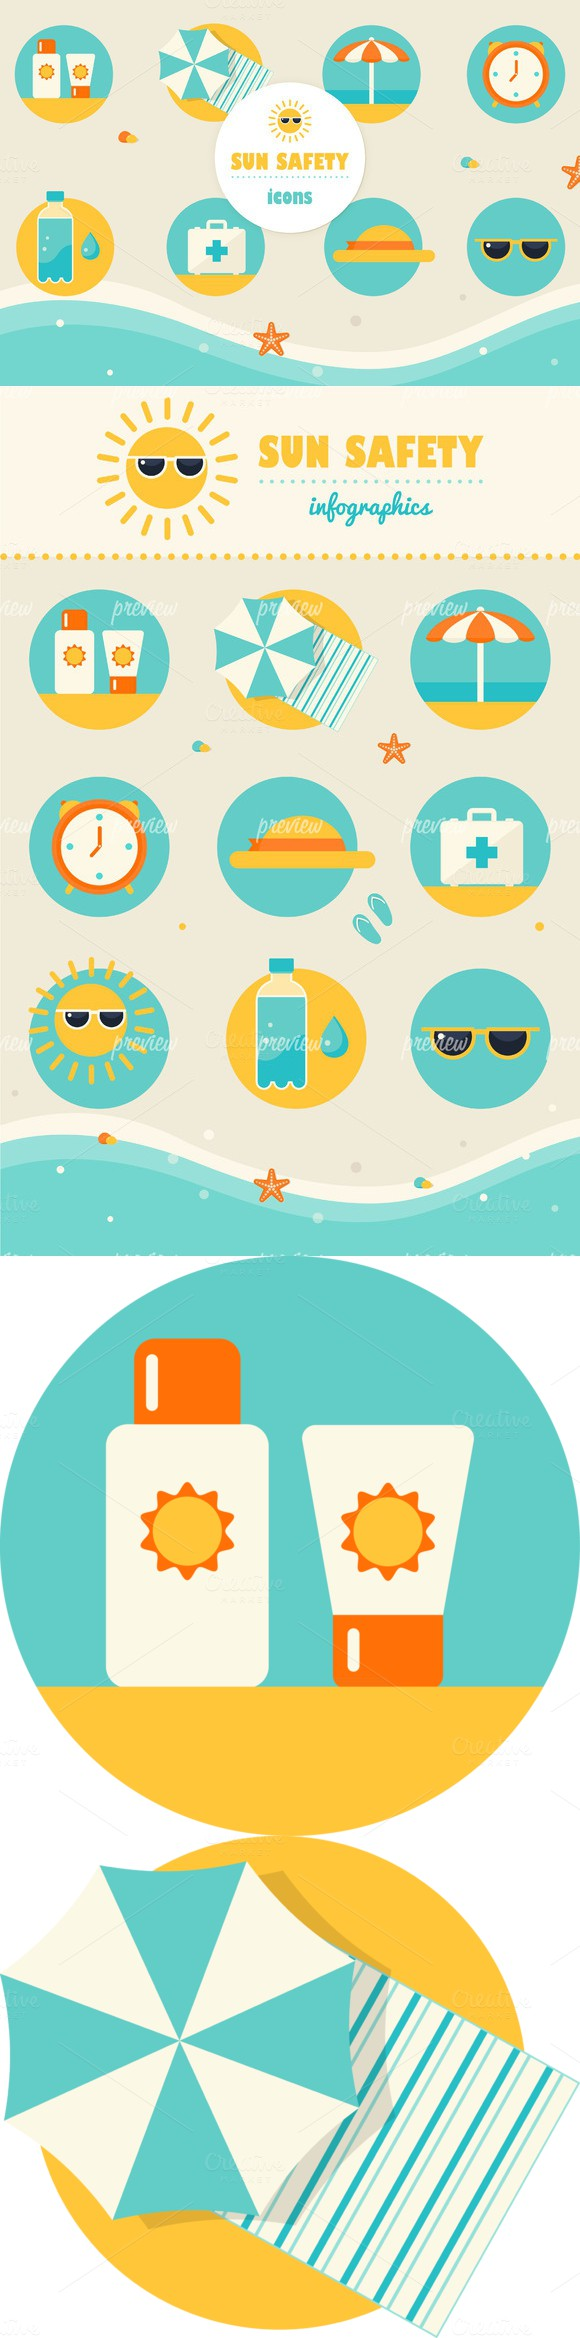 Sun Safety Infographics Elements Infographic